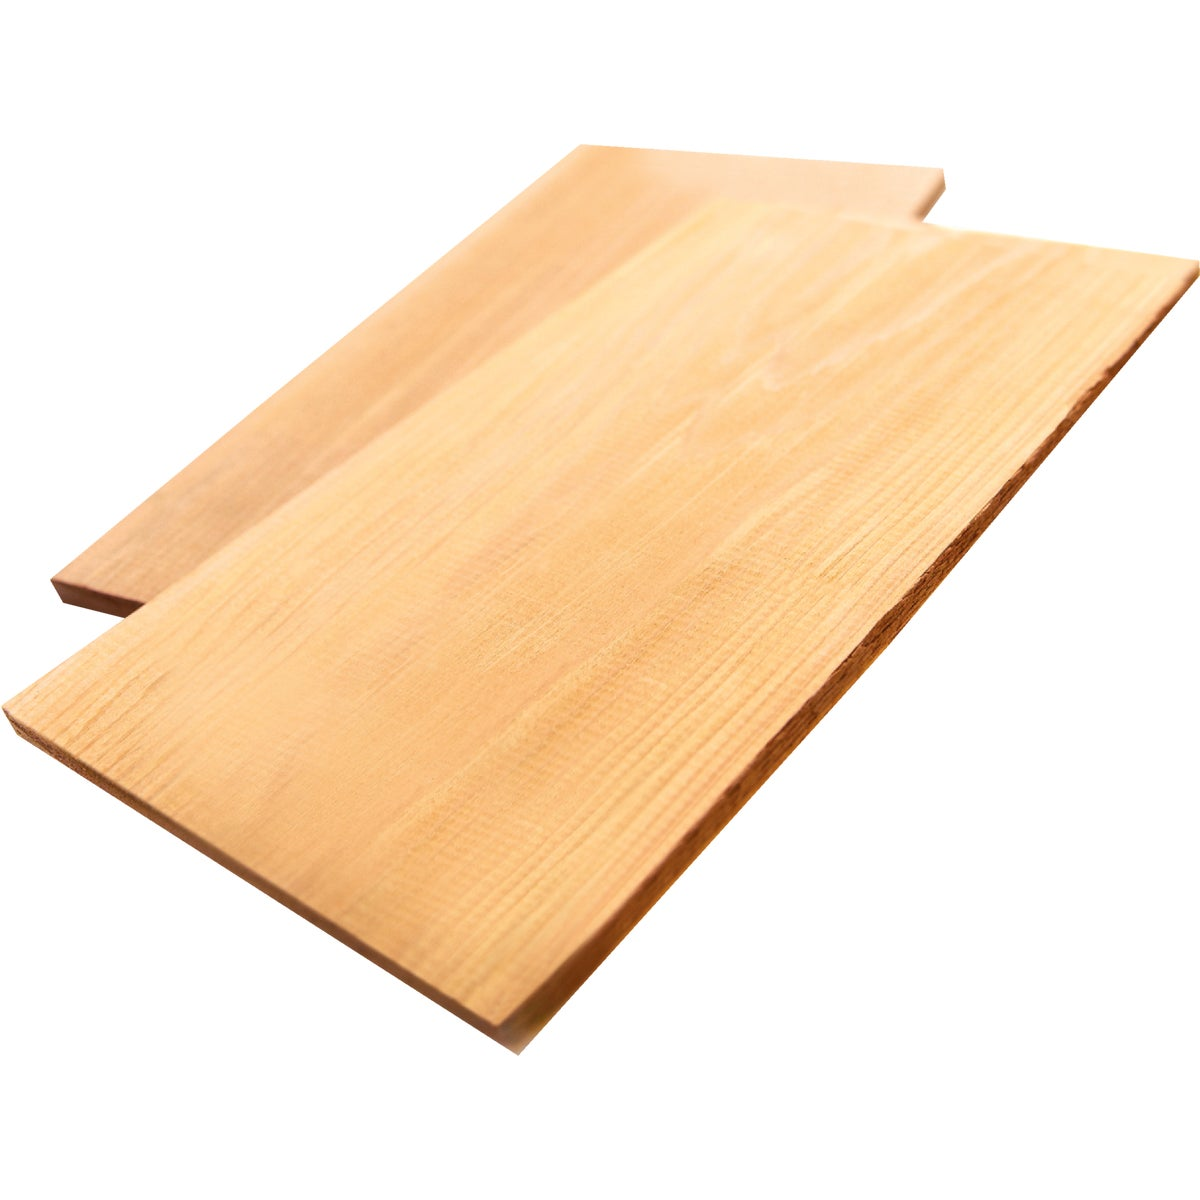 CEDAR GRILLING PLANKS - 30503 by Barbeque Wood Flavor